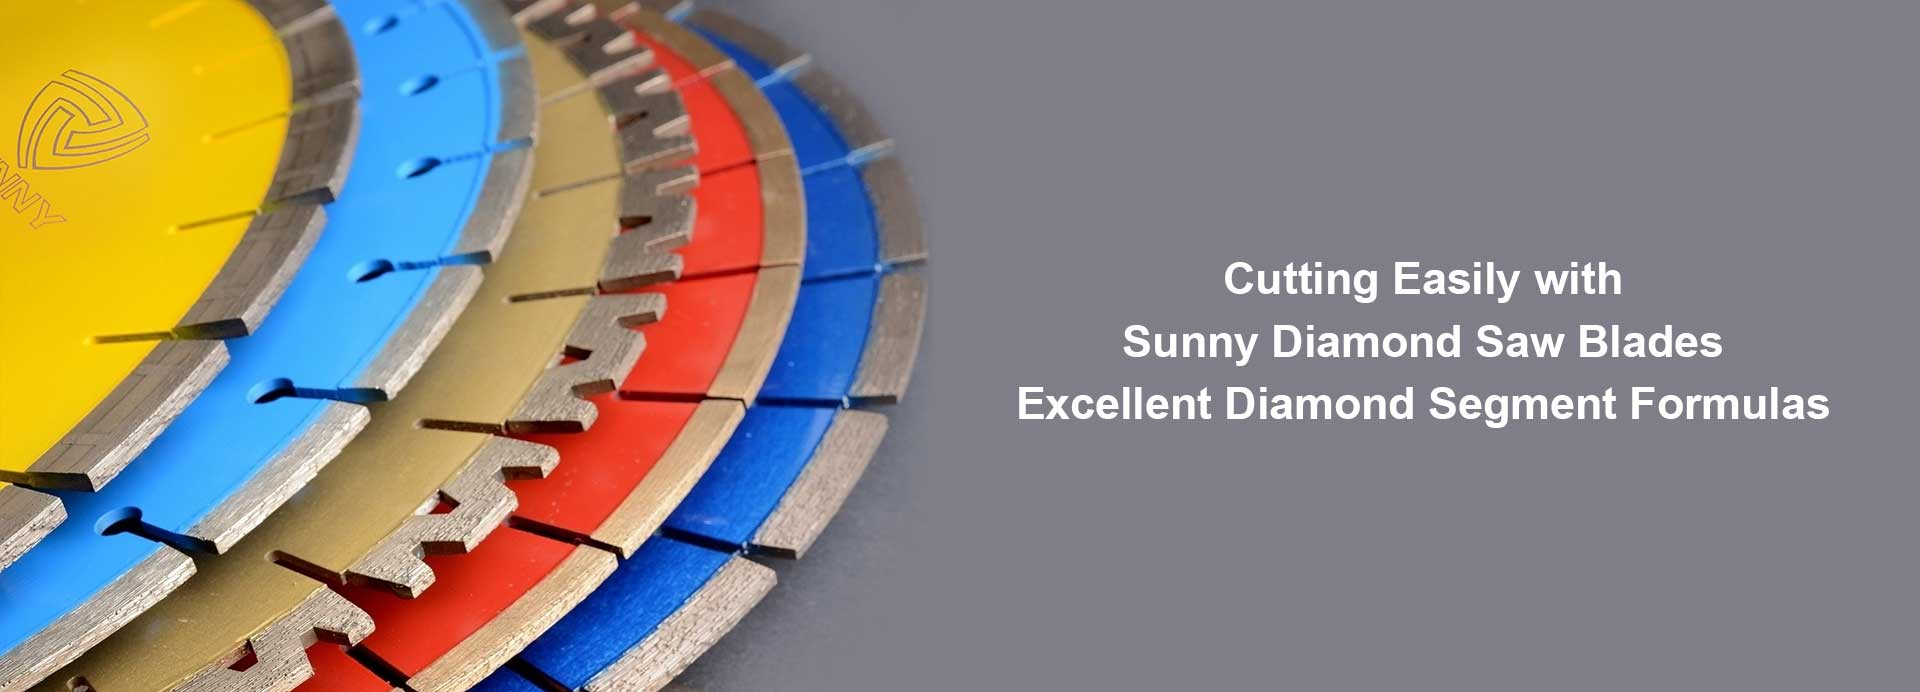 diamond saw blade and diamond segment